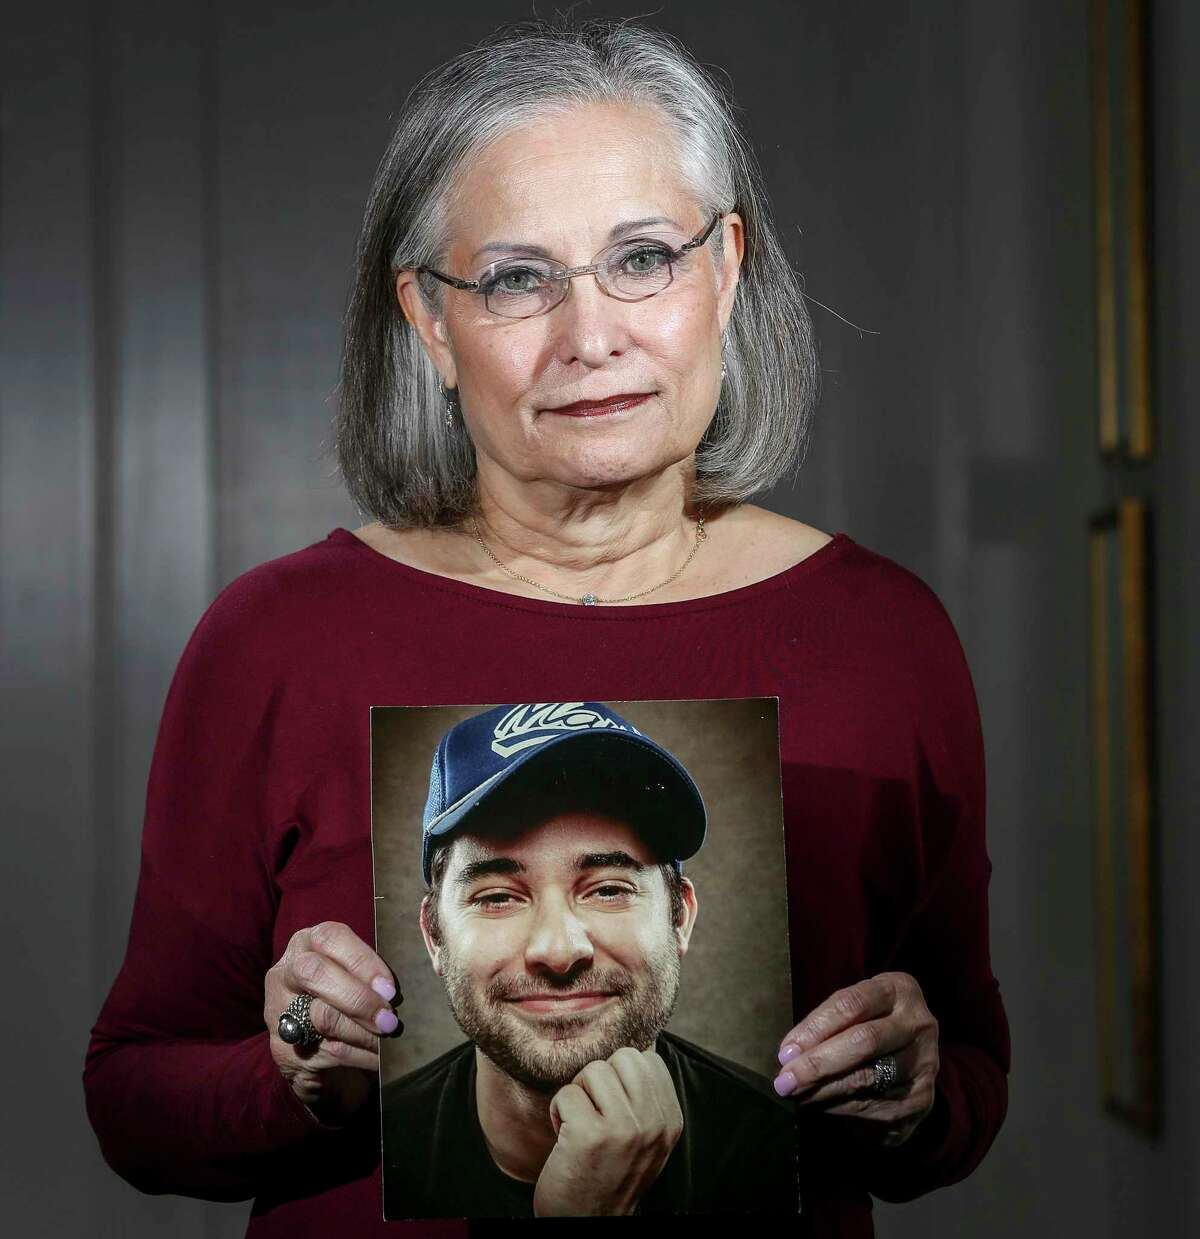 """""""That's what we're trying to do, is making his death count,"""" said Maureen Wittels on Wednesday, Feb. 12, 2020, at her home in Houston. Wittels lost her son Harris to a heroin overdose about five years ago. She has since started a Houston chapter of G.R.A.S.P., or Grief Recovery After a Substance Passing. """"Our meetings are so helpful, because you can get it all out,"""" she said. """"That's what we need, we need to get it out."""""""